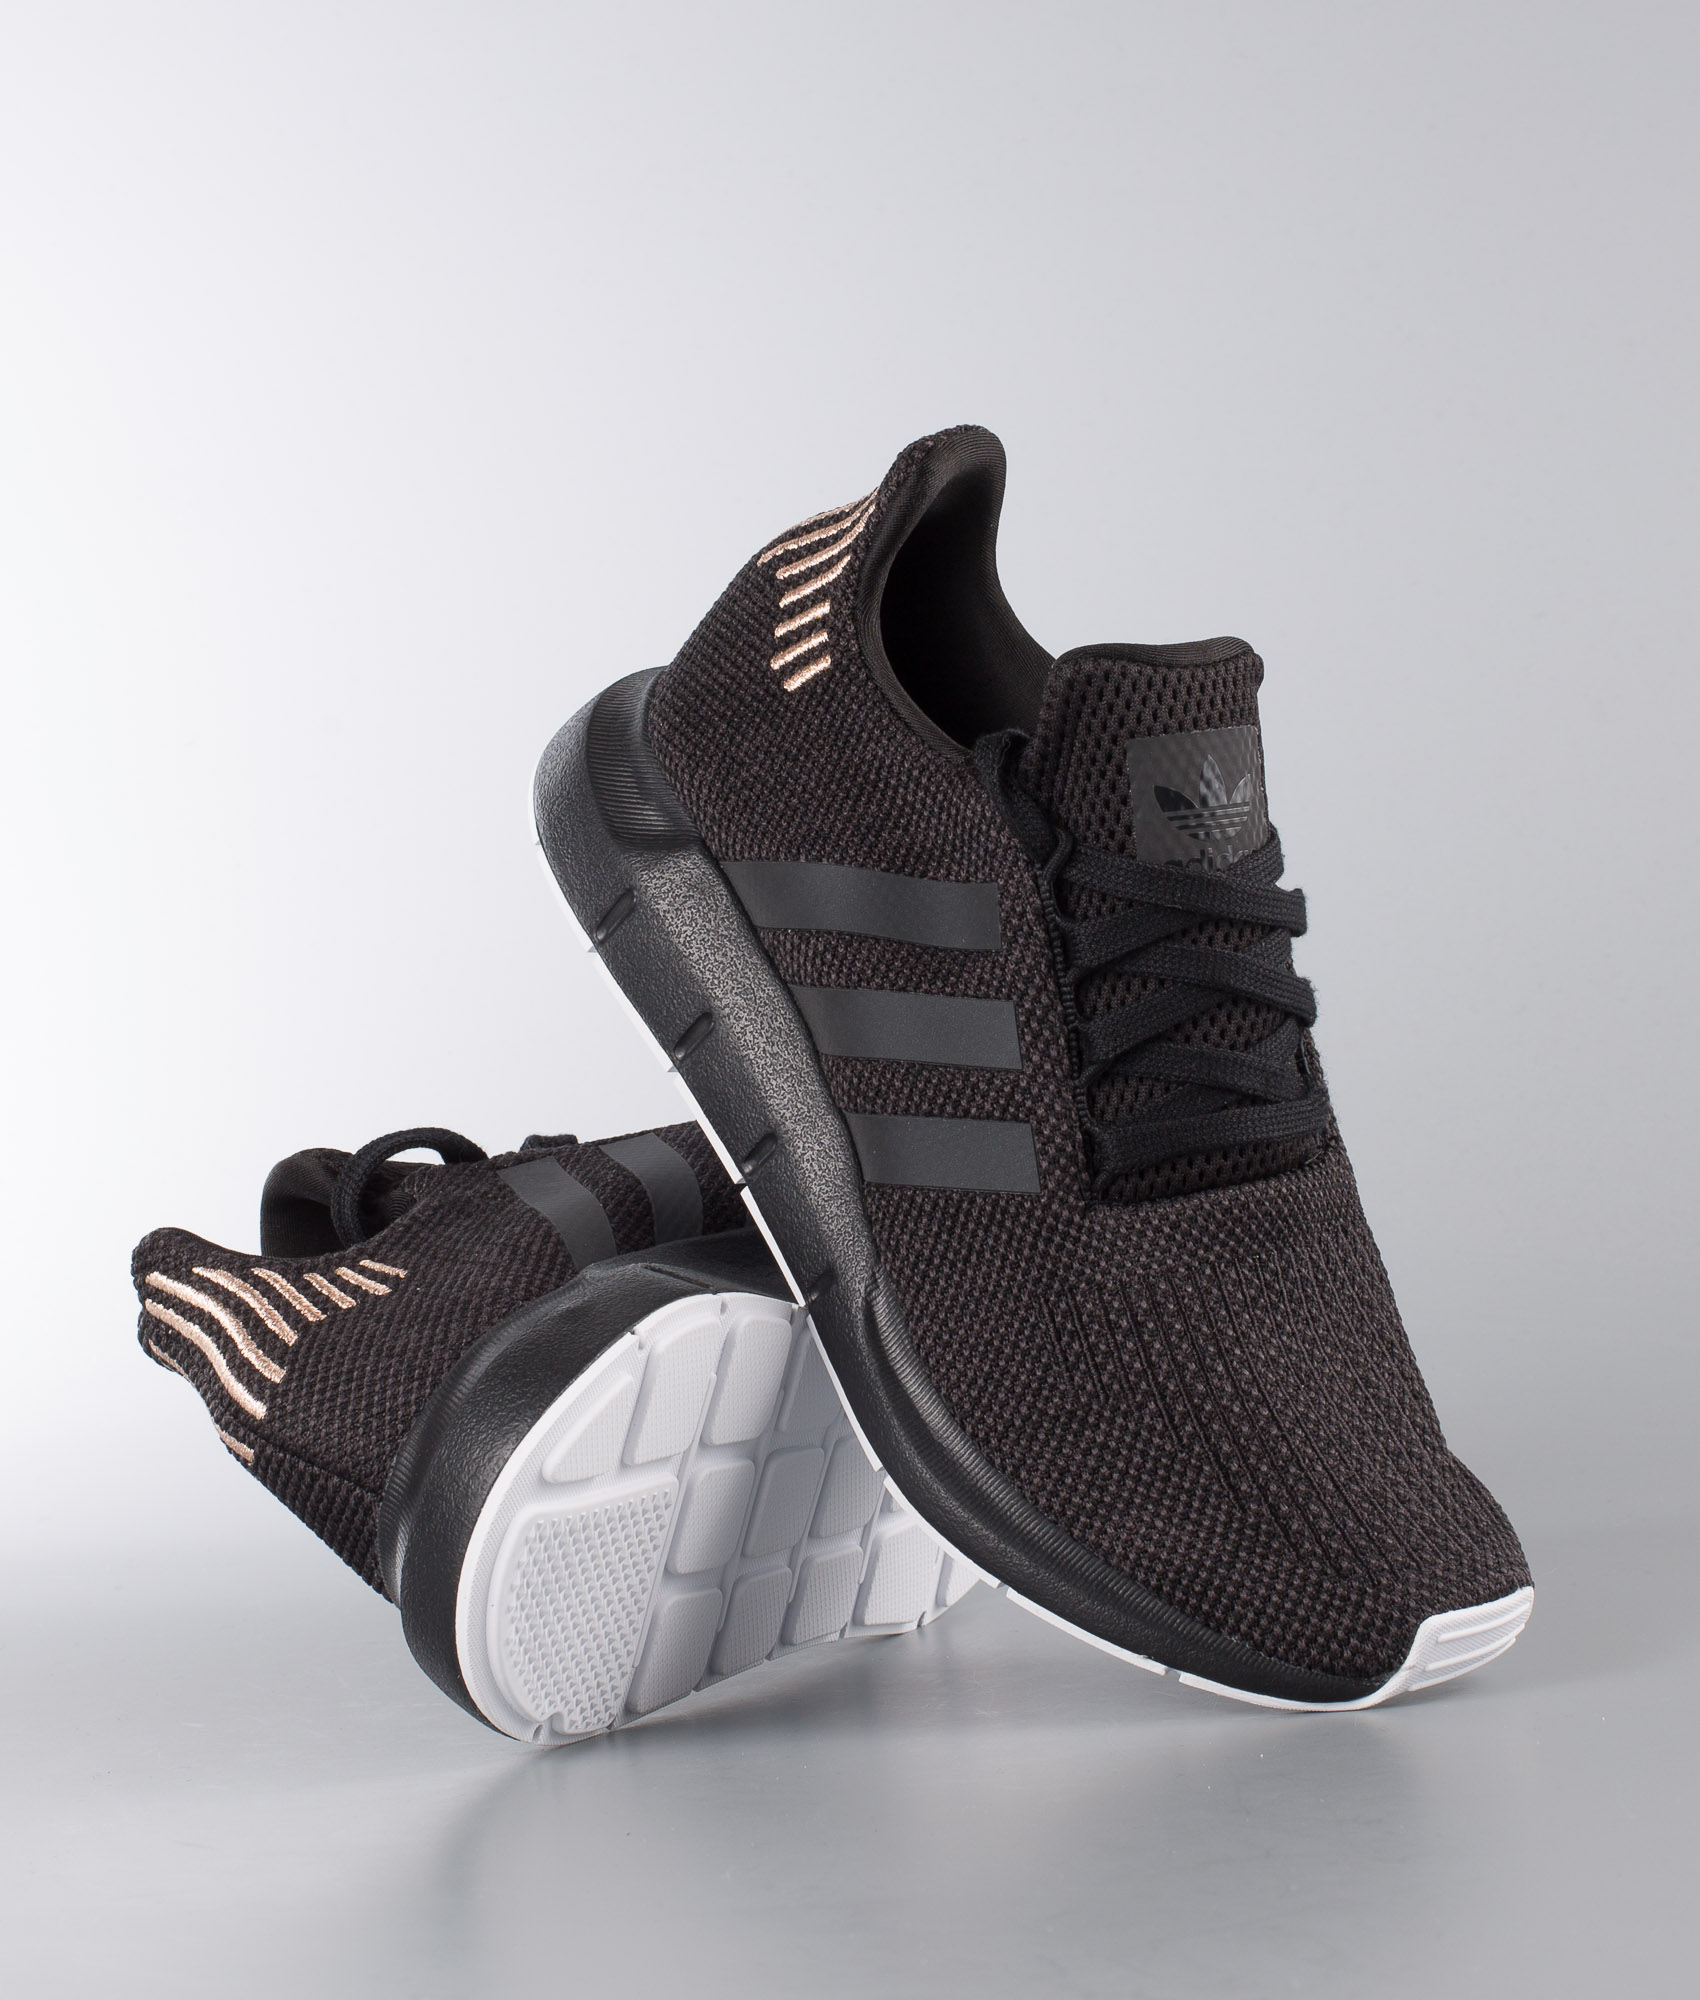 1c5d2a04d Adidas Originals Swift Run W Shoes Core Black Carbon Ftwr White -  Ridestore.com